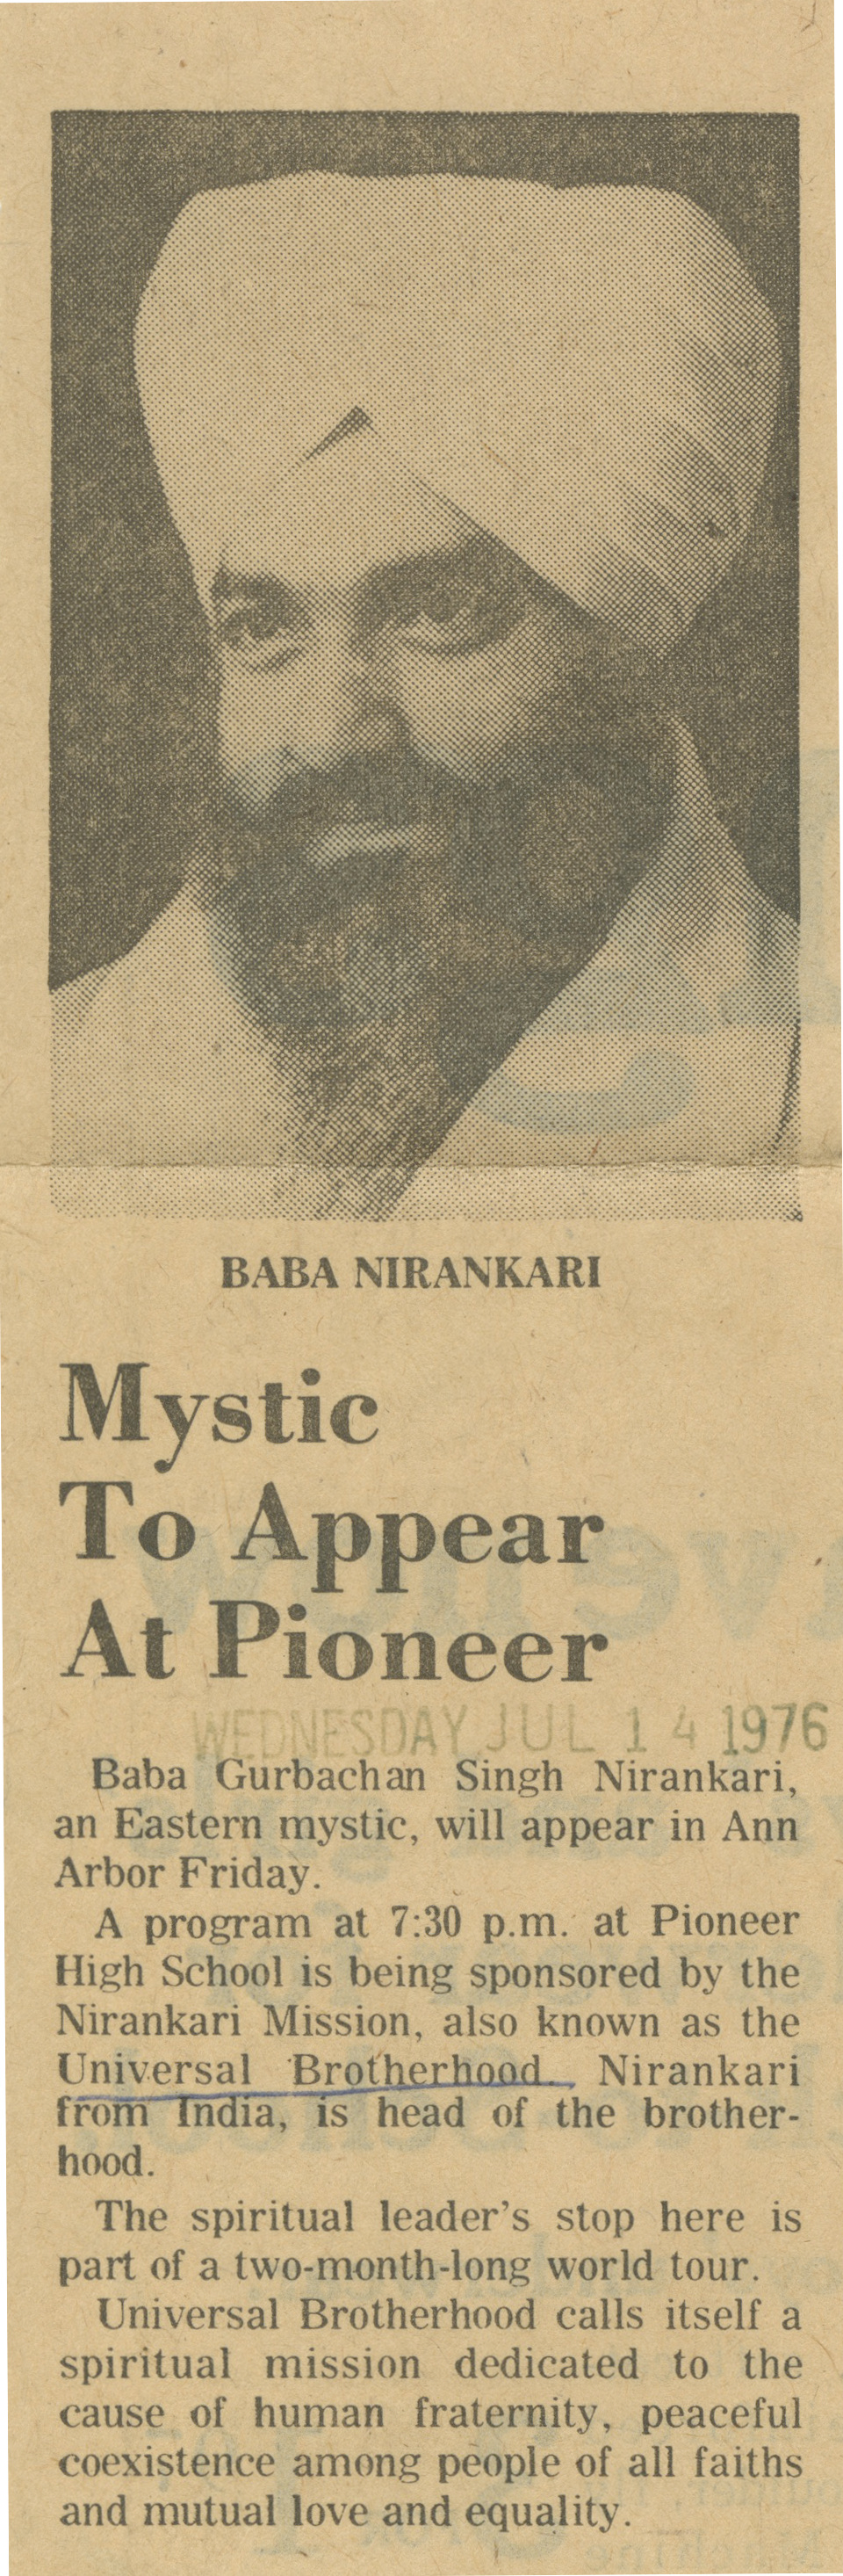 Mystic To Appear At Pioneer image